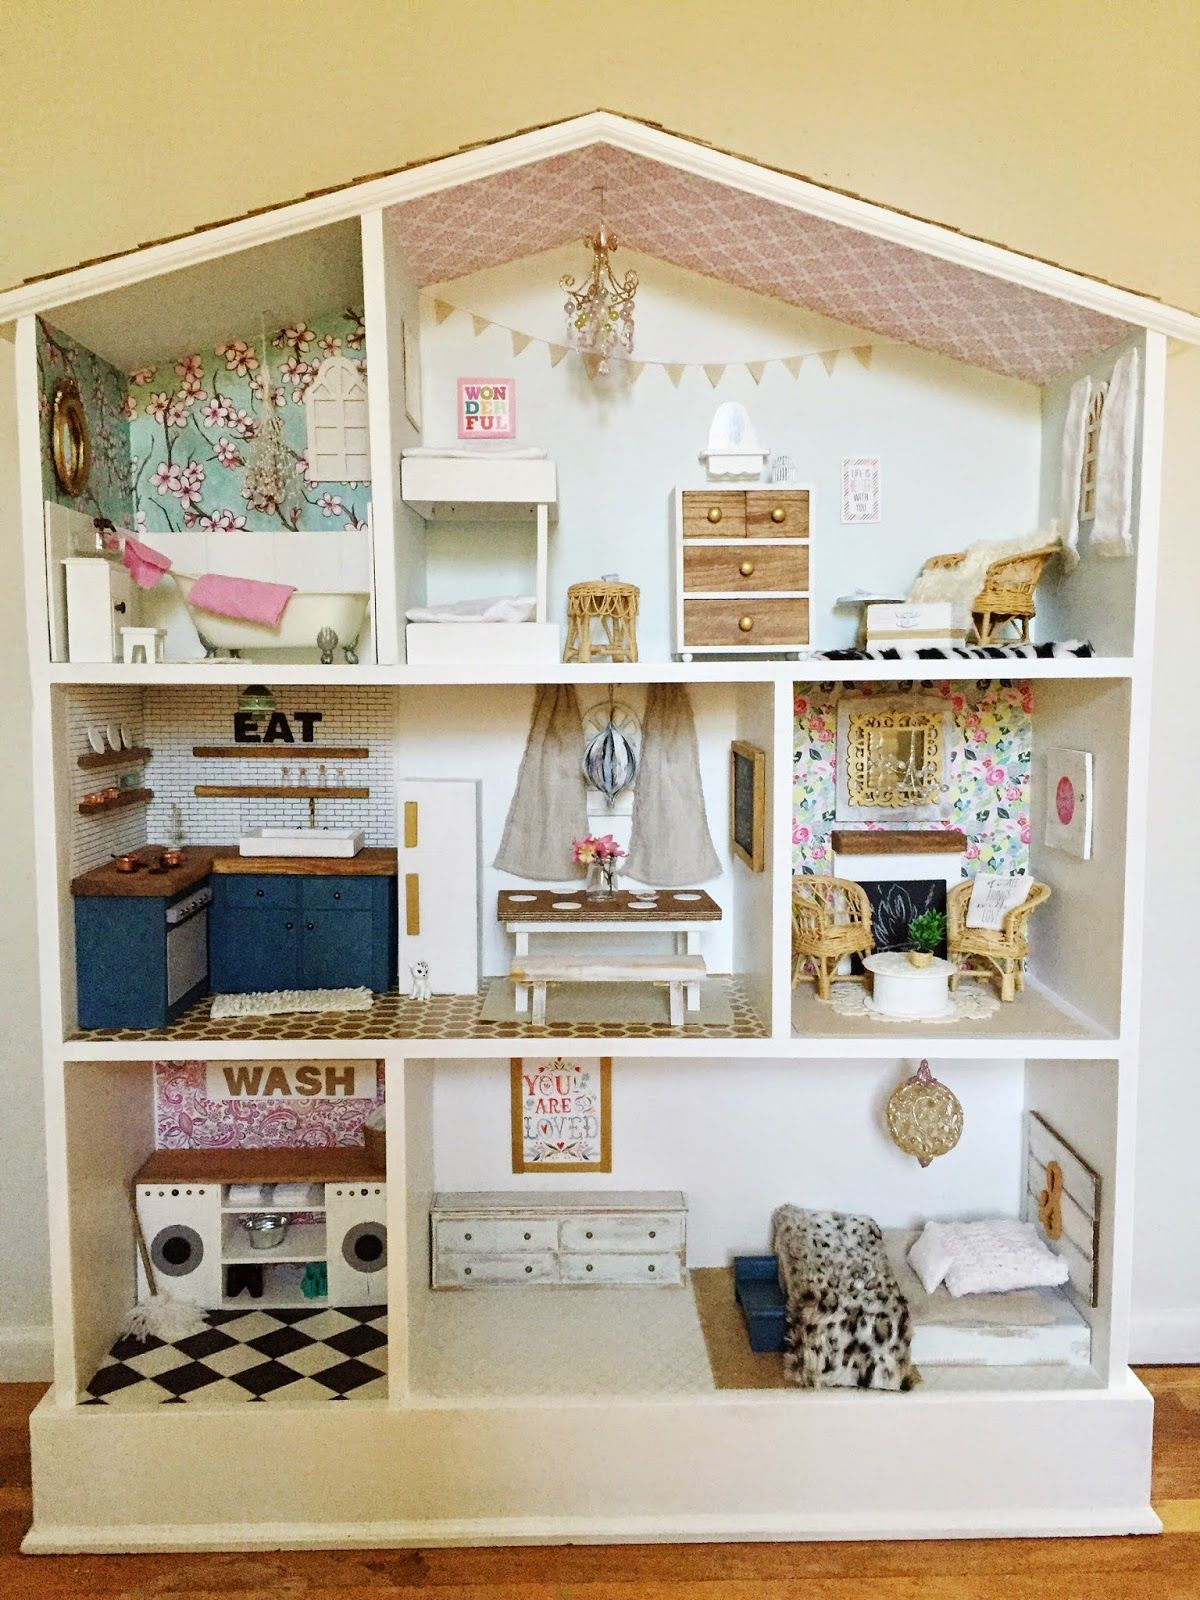 Make Your Own Barbie Furniture Property Cool Diy Barbie House  Barbie House Barbie And Do It Yourself Inspiration